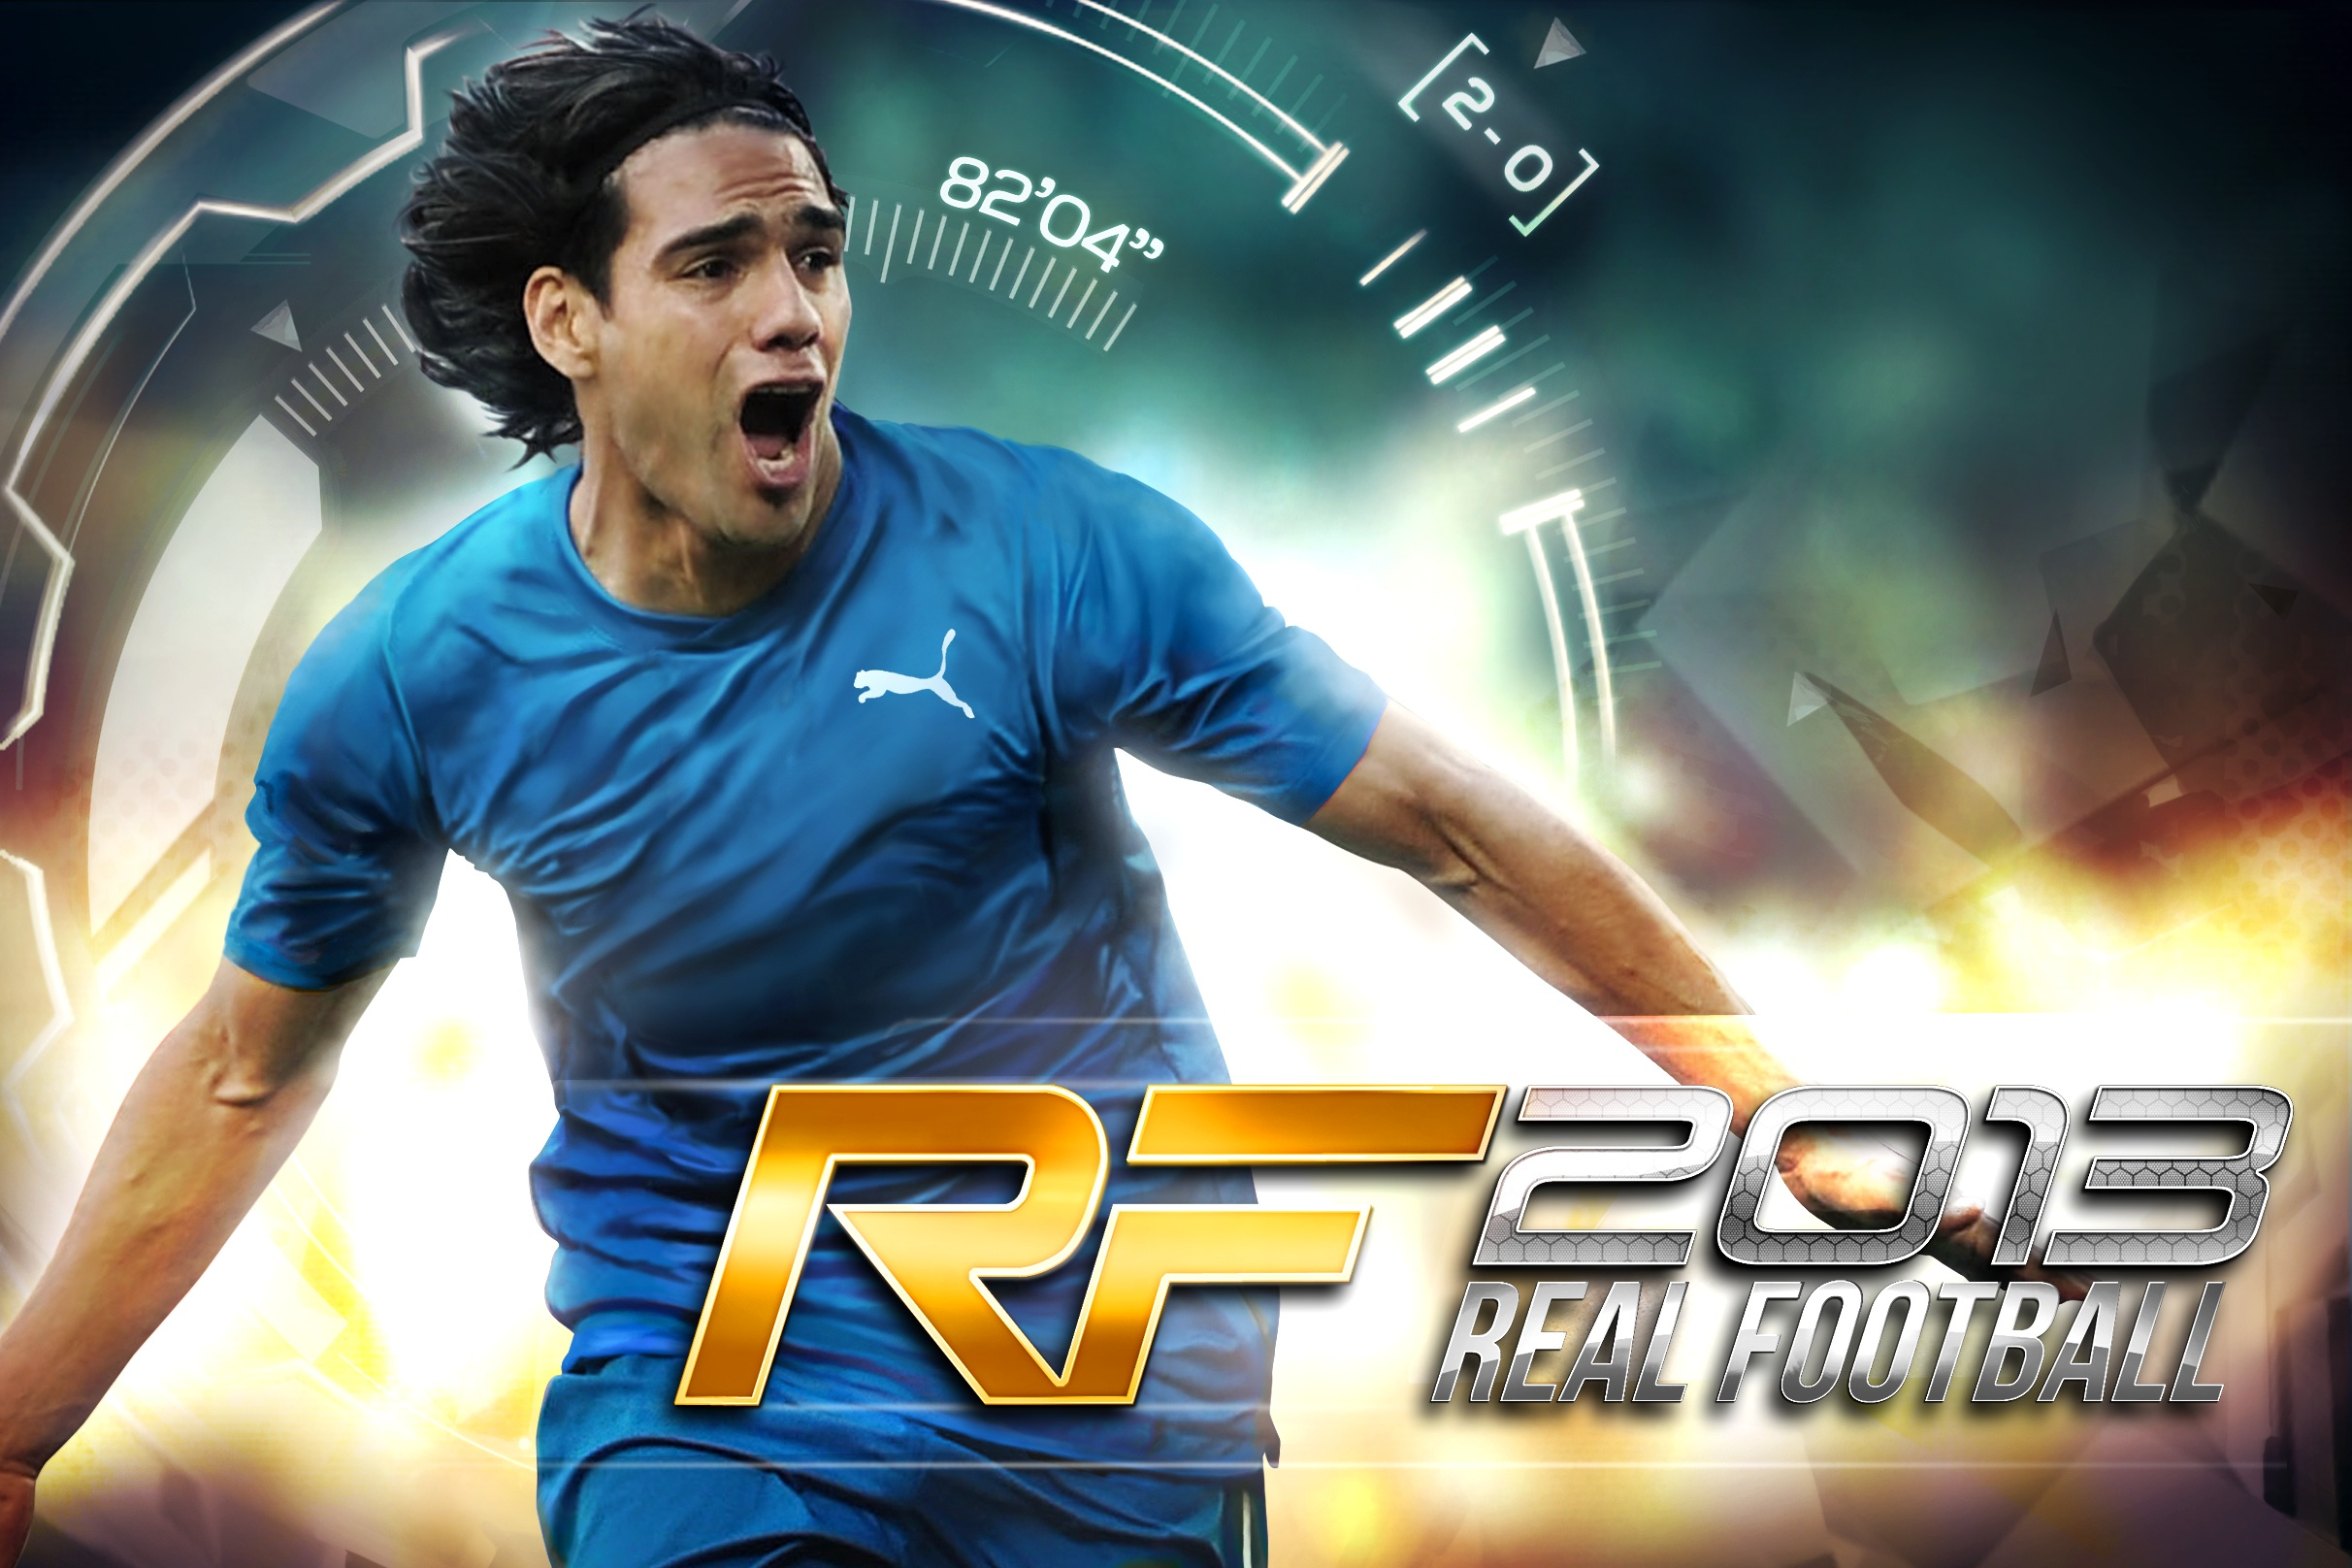 Hands-on with Real Football 2013